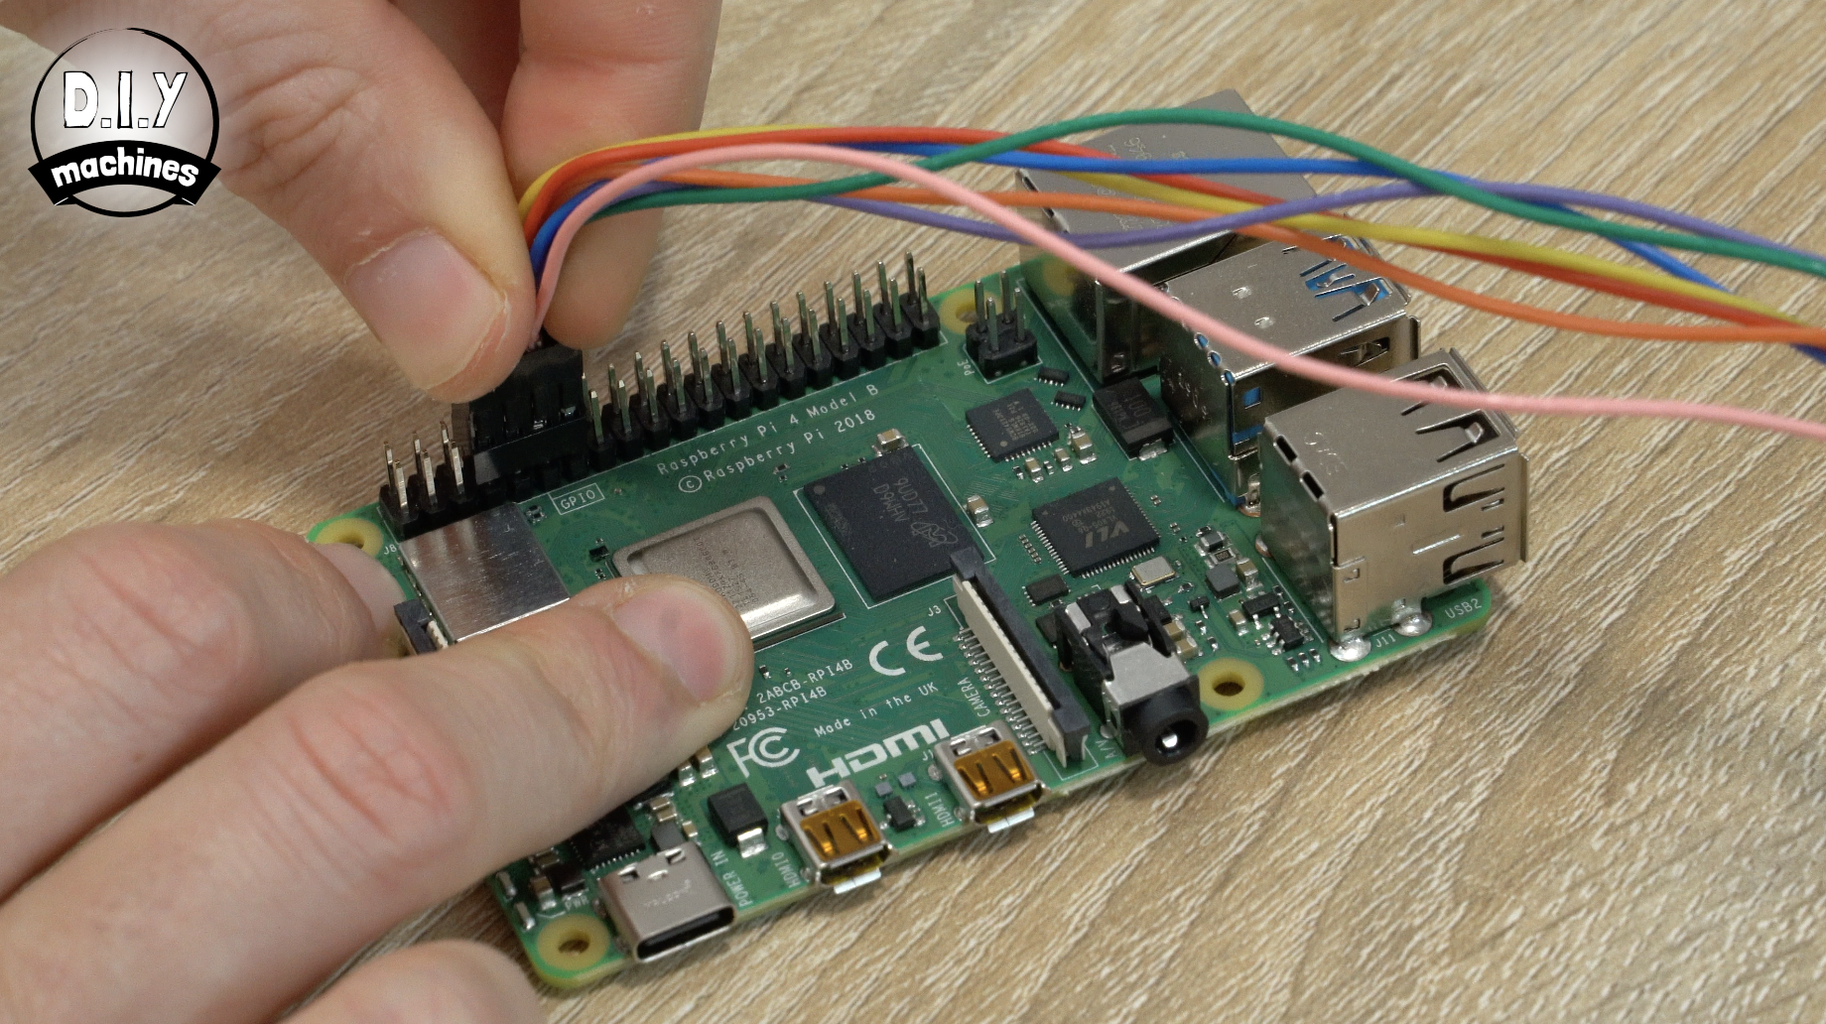 Connecting Our Main Cable to the Raspberry Pi